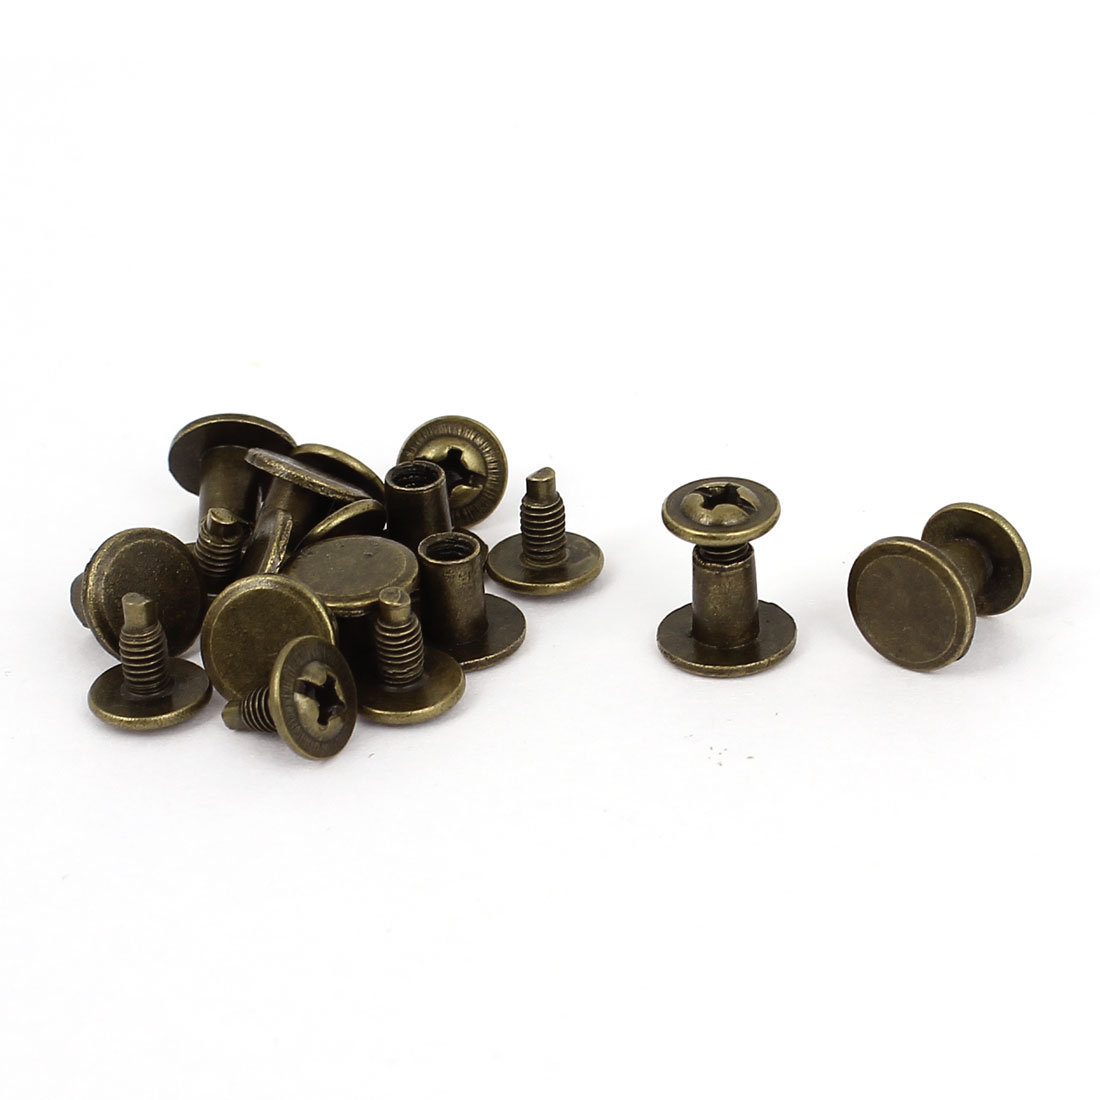 10pcs 4.5mmx6mm Bronze Plated Binding Screw Post For Leather Photo Albums Belt